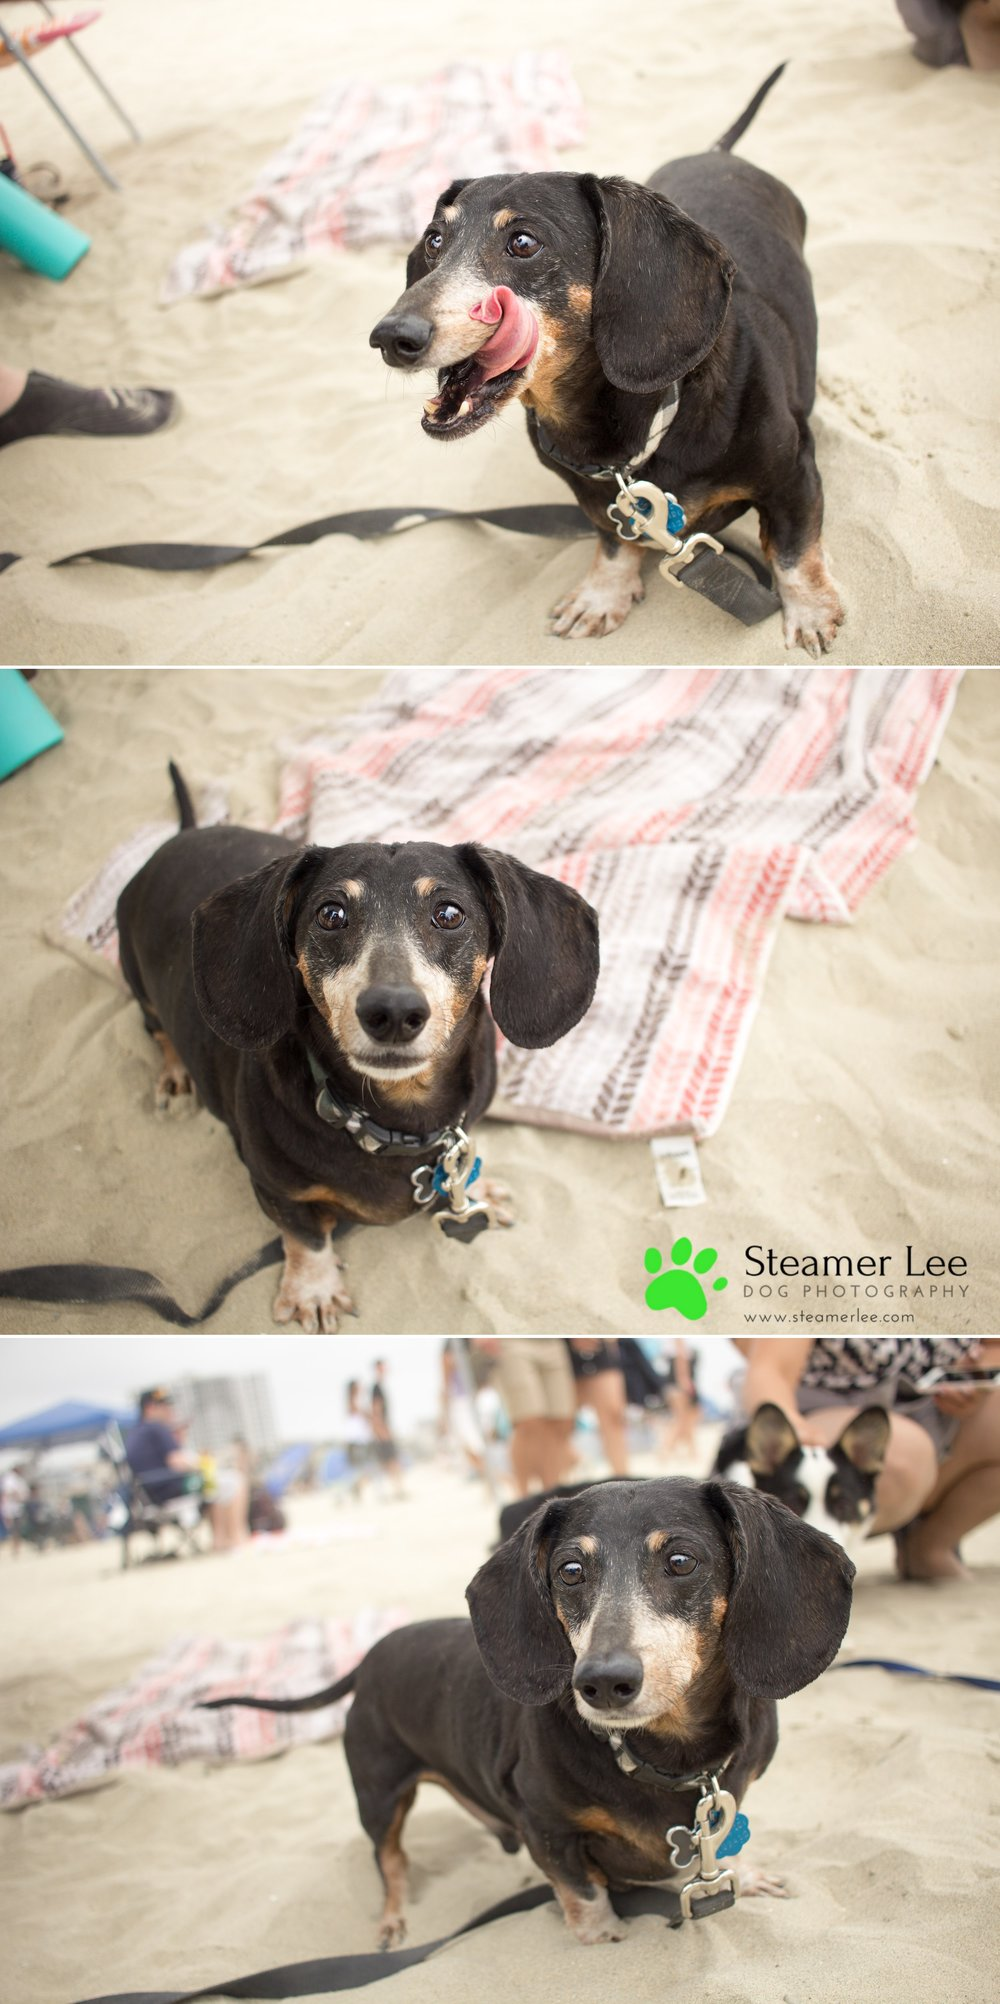 Steamer Lee Dog Photography - July 2017 So Cal Corgi Beach Day - Vol. 3 - 6.jpg